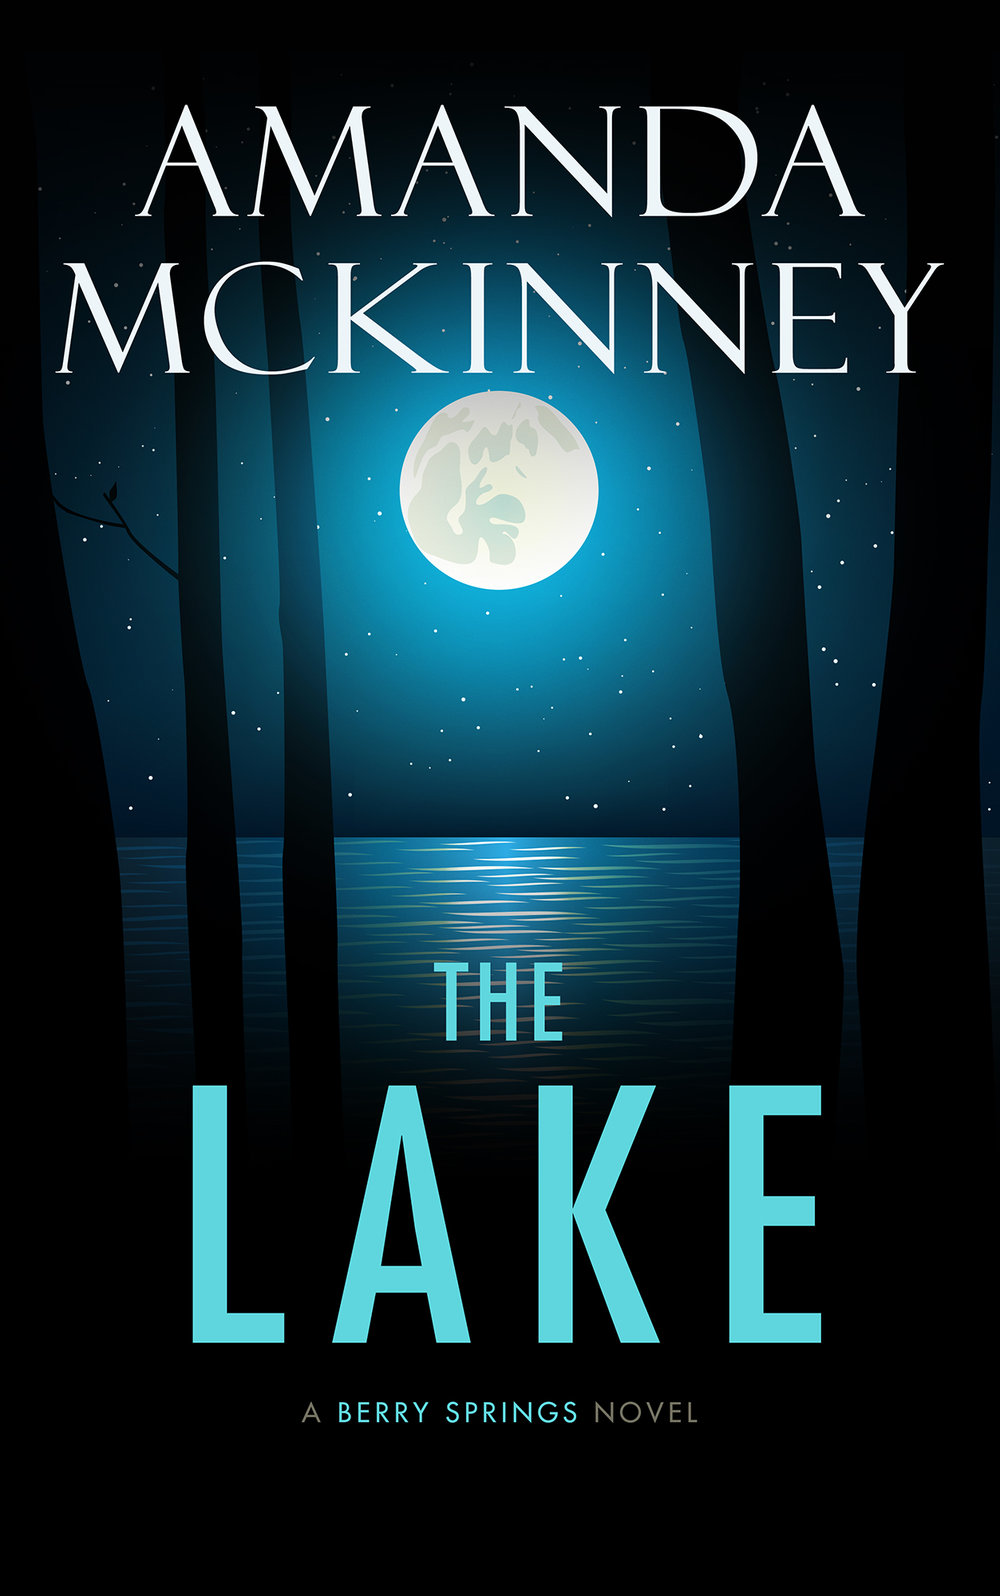 The Lake - Ebook Small.jpg